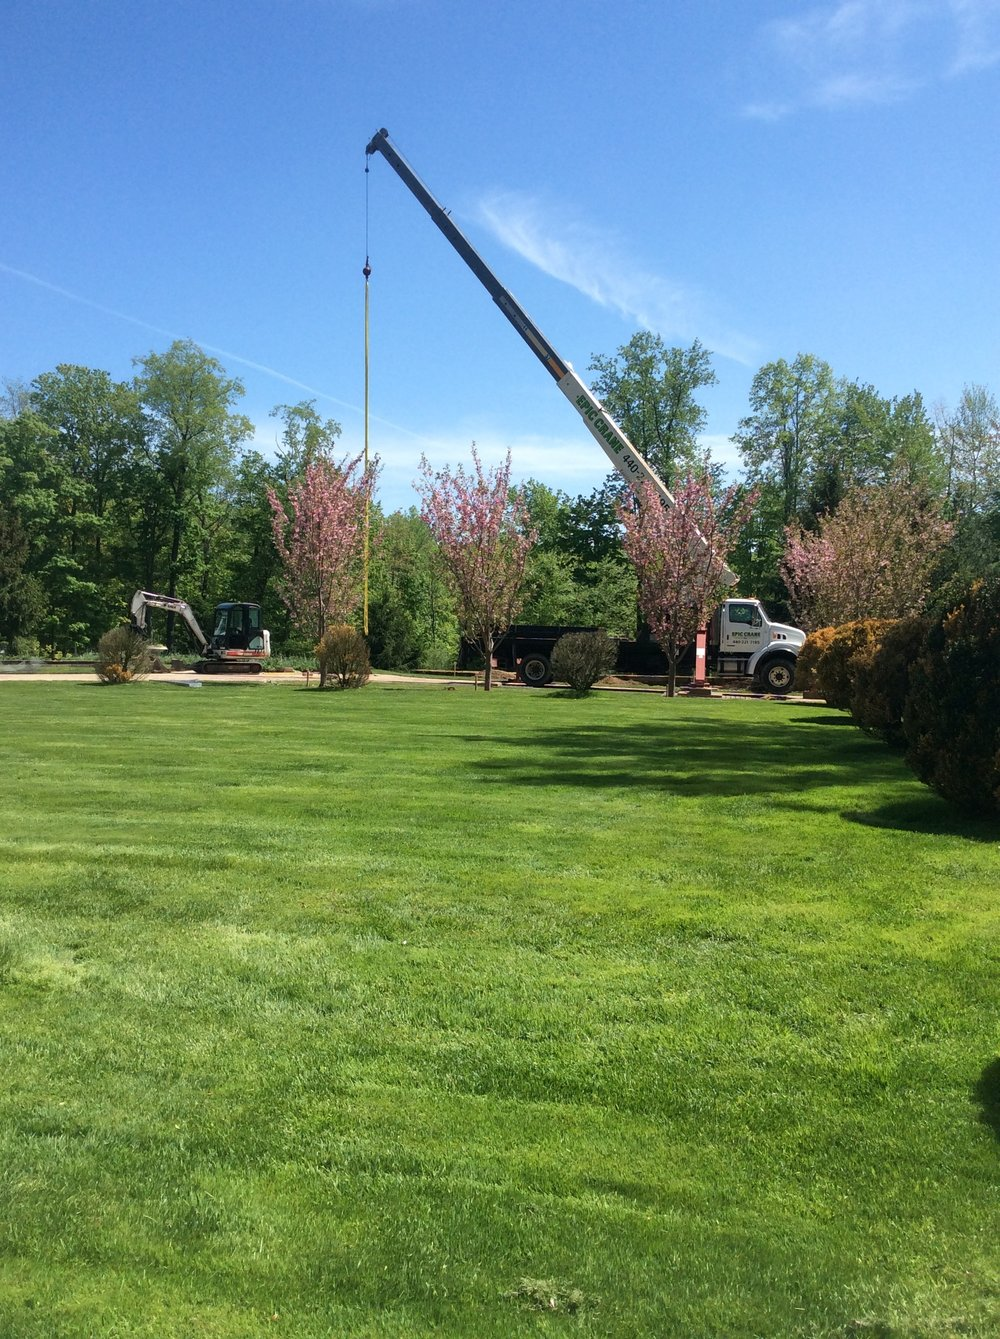 Landscaping companies with awn fertilizer and lawn care services in Bainbridge Township, OH